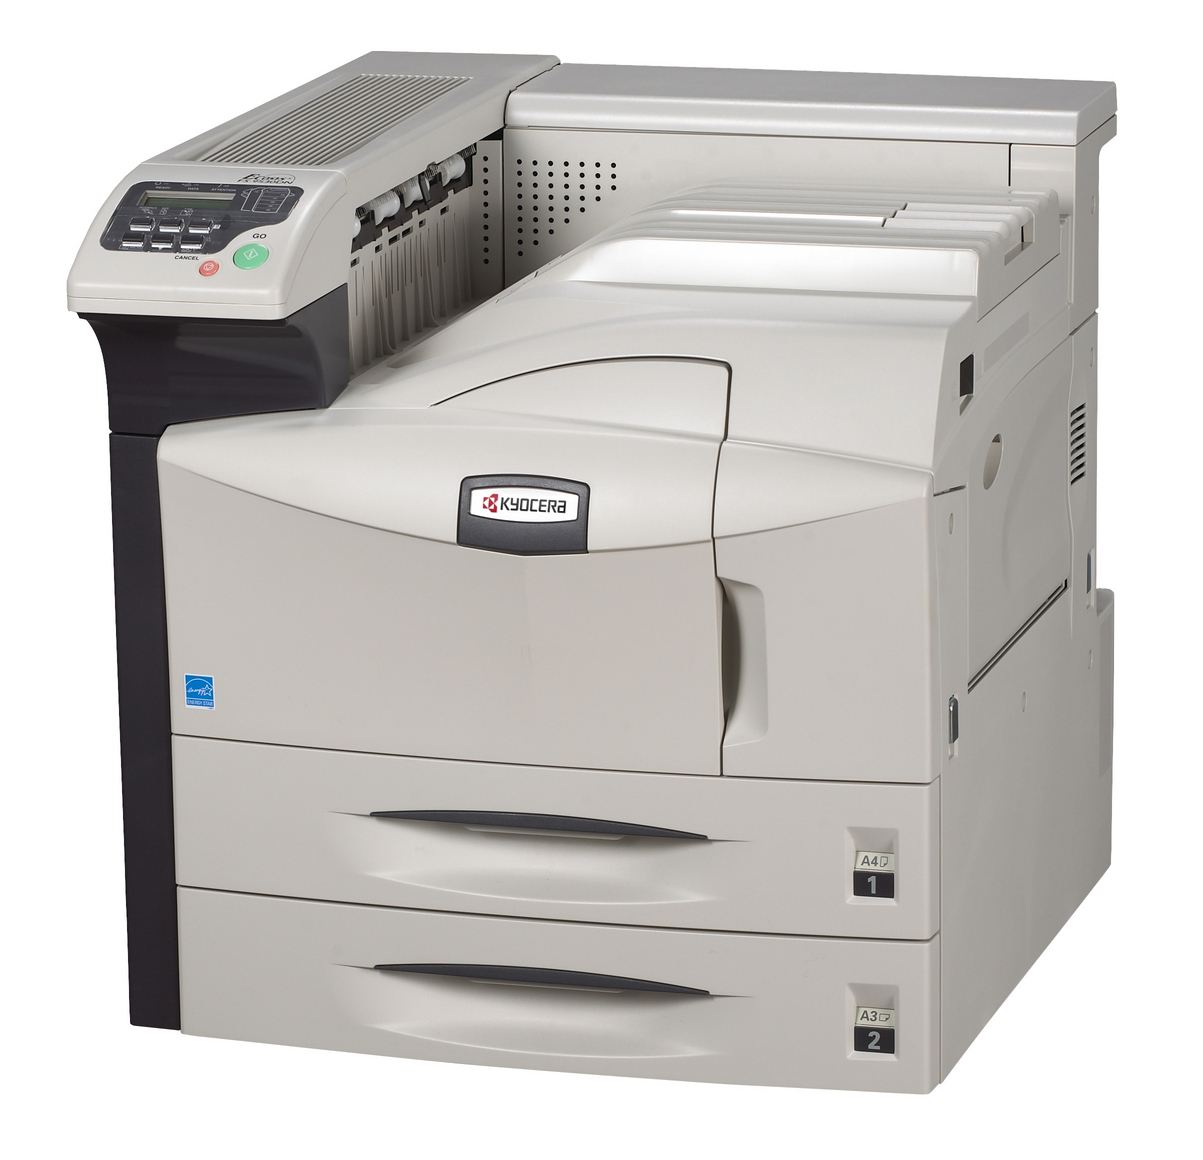 KYOCERA FS-9530DN A3 Mono Laser Printer, 51ppm A4, 1800 x 600 dpi, 128MB, 2 Years Warranty